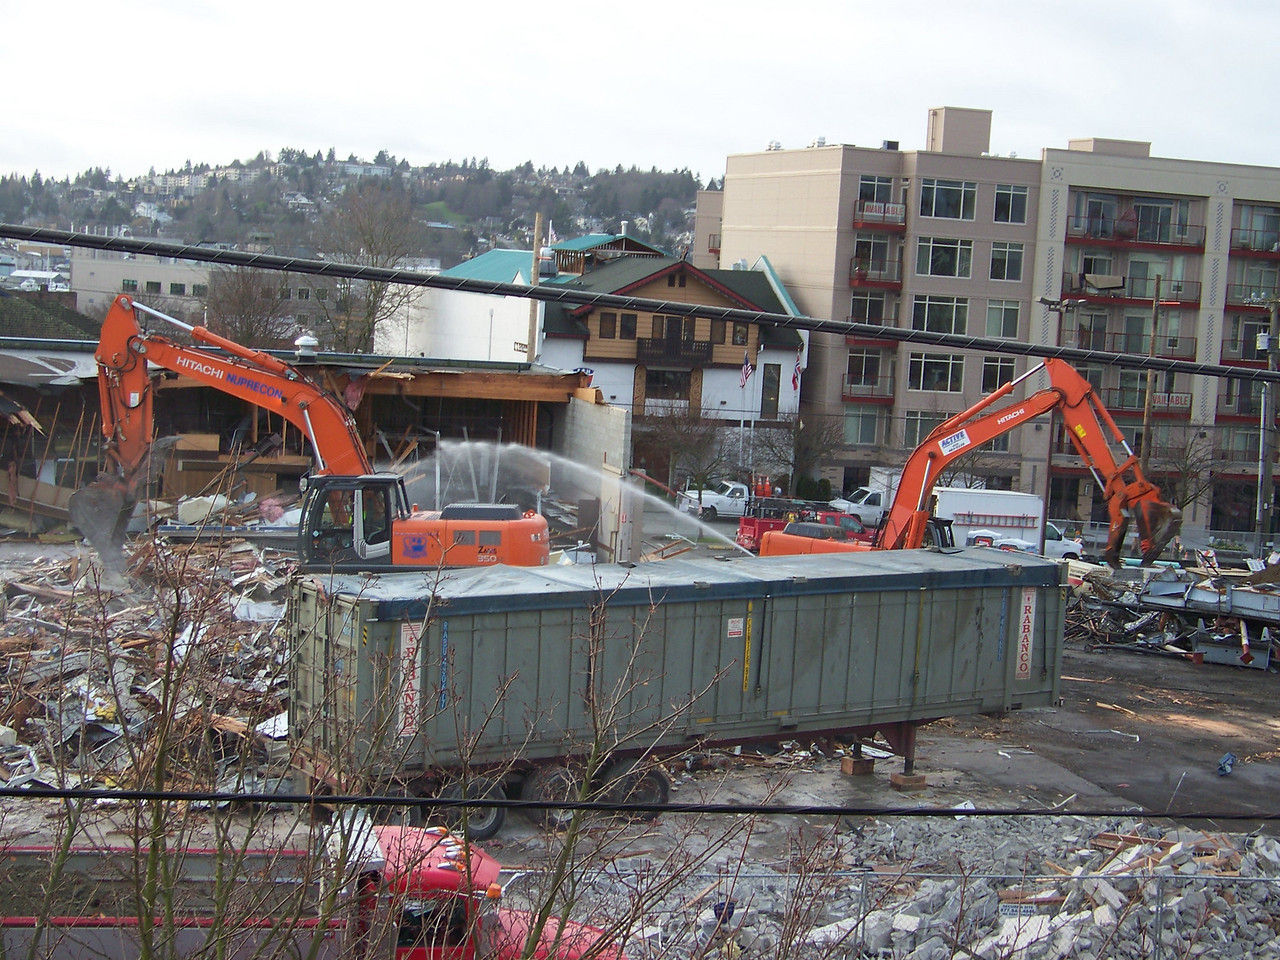 January 9, 2008.  Demolition of the old Ballard QFC building.